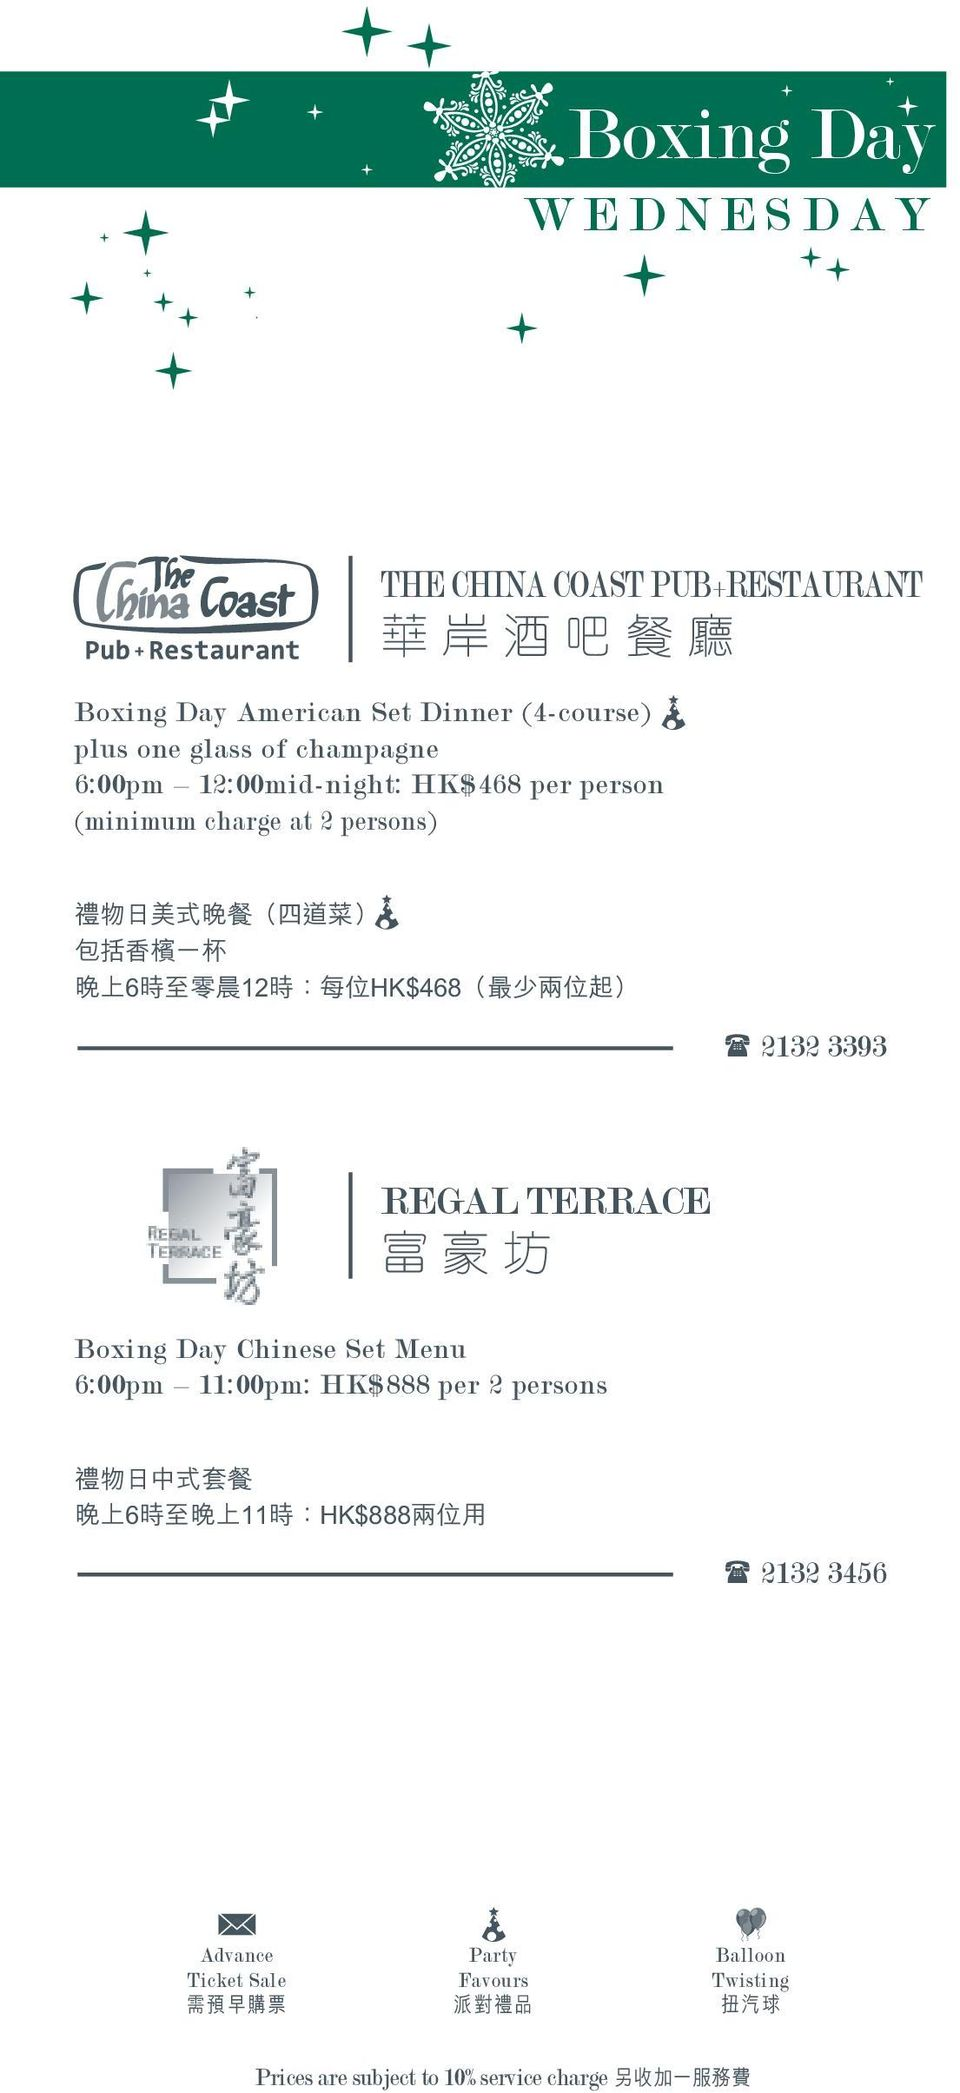 2 persons) ( 2132 3393 REGAL TERRACE Boxing Day Chinese Set Menu 6:00pm 11:00pm: HK$888 per 2